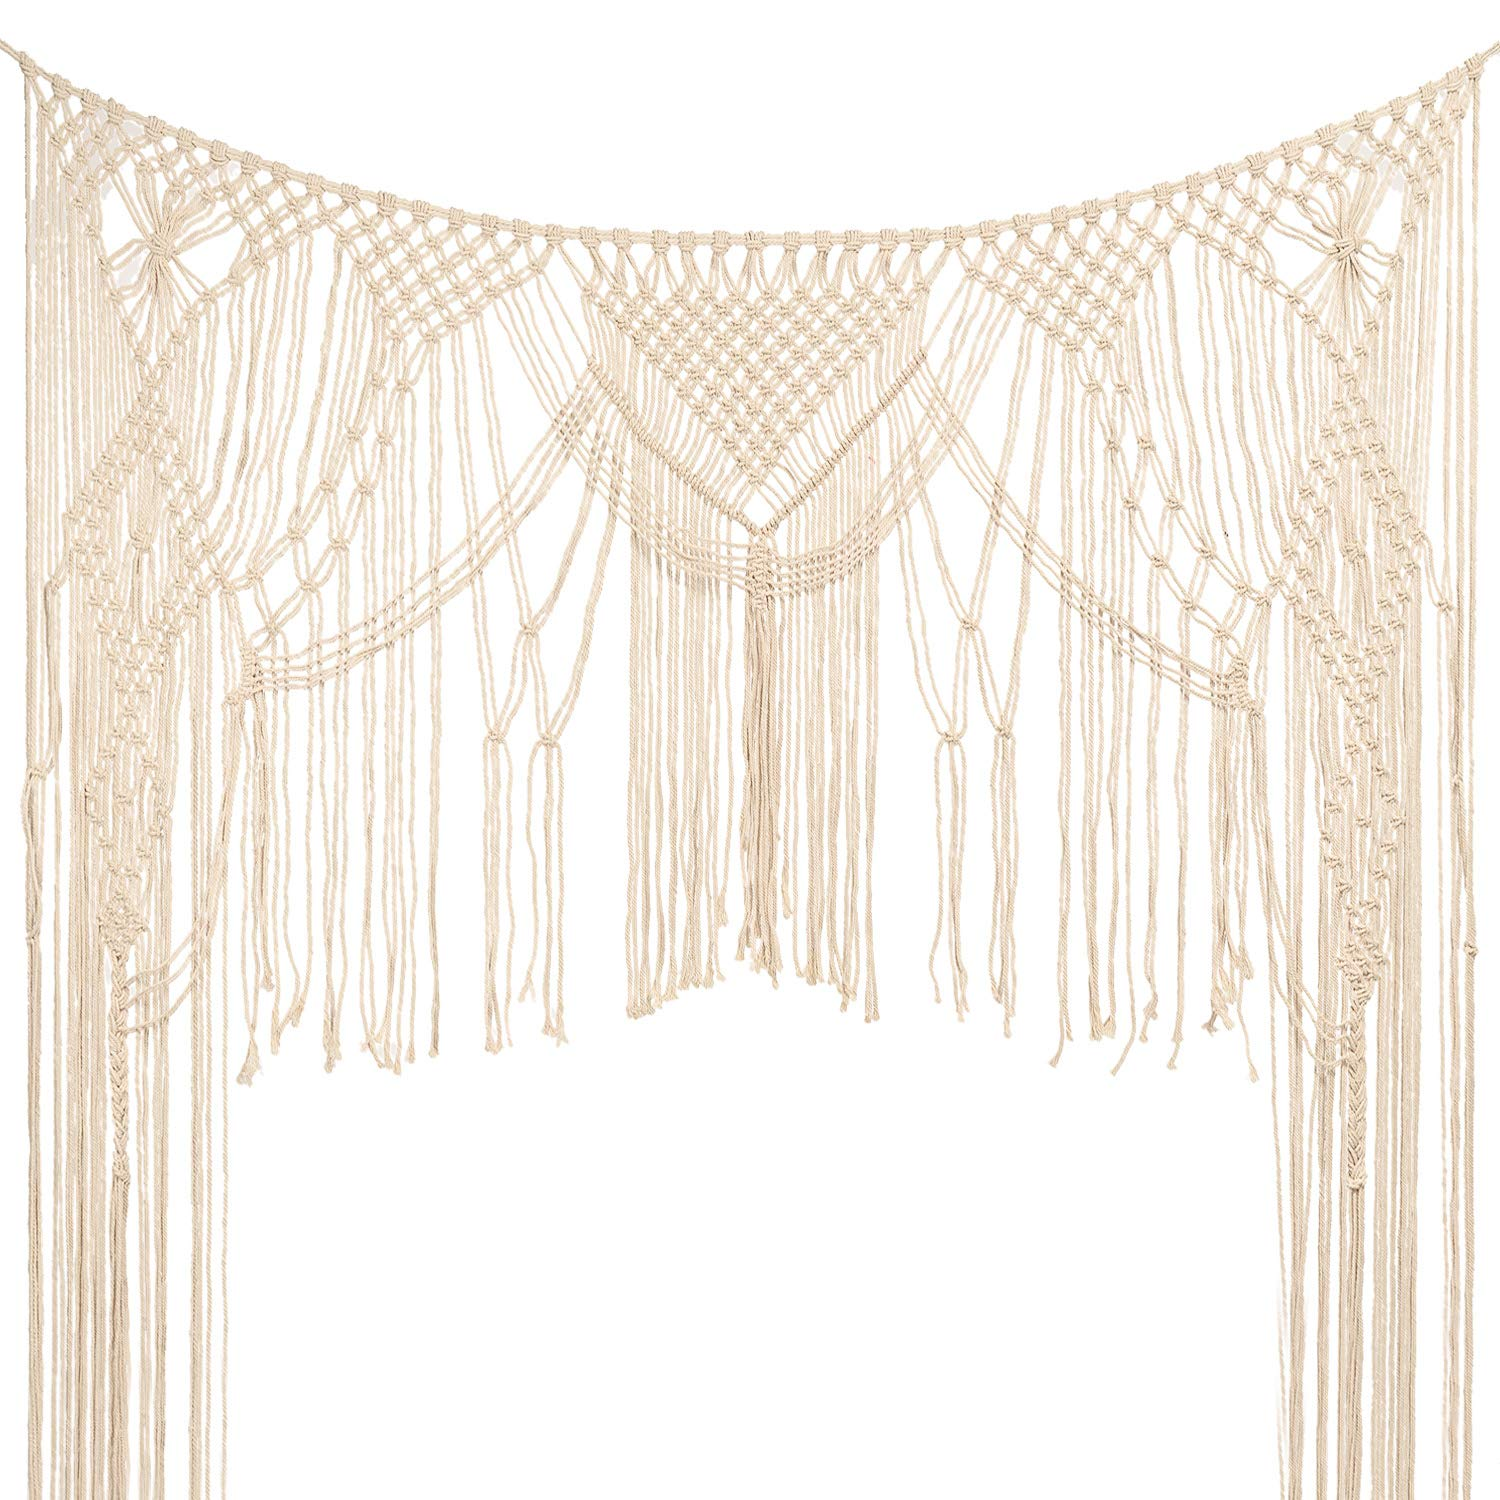 Large Macrame Wall Hanging,Macrame Woven Wall Hanging,Macramé Handwoven Boho Chic,Bohemian Wedding Backdrop for Home Art Decor,Living Room Bedroom Decorations,Ceremony or Photography. 5FT X 6FT by MEJOY